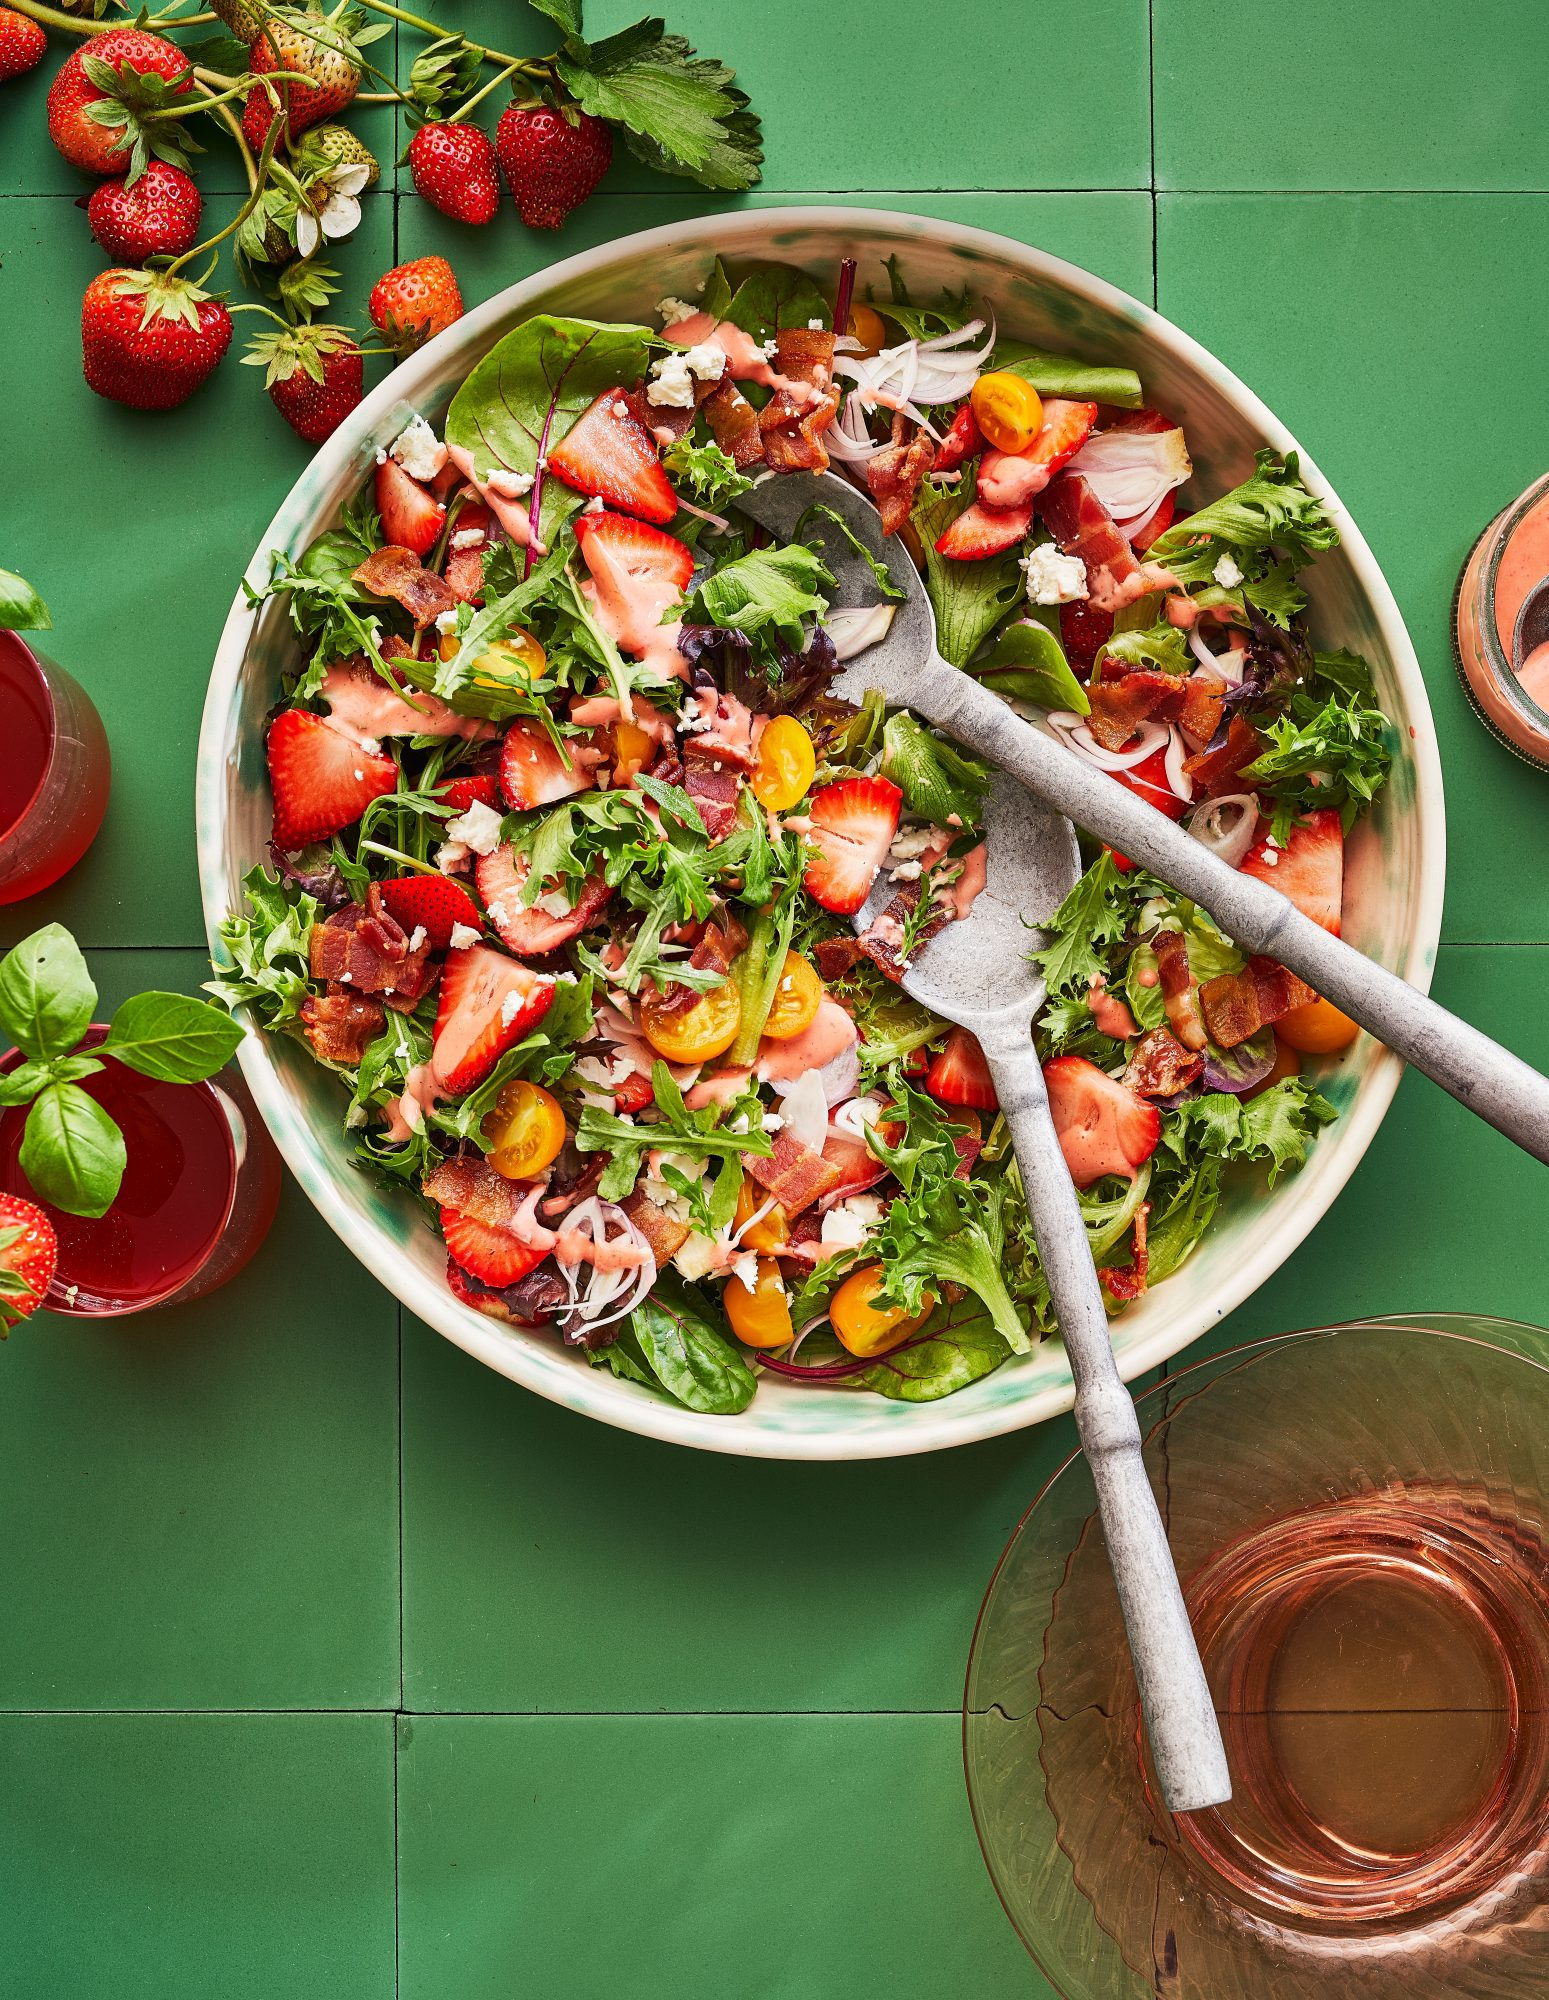 Spring Salad with Berries and Bacon